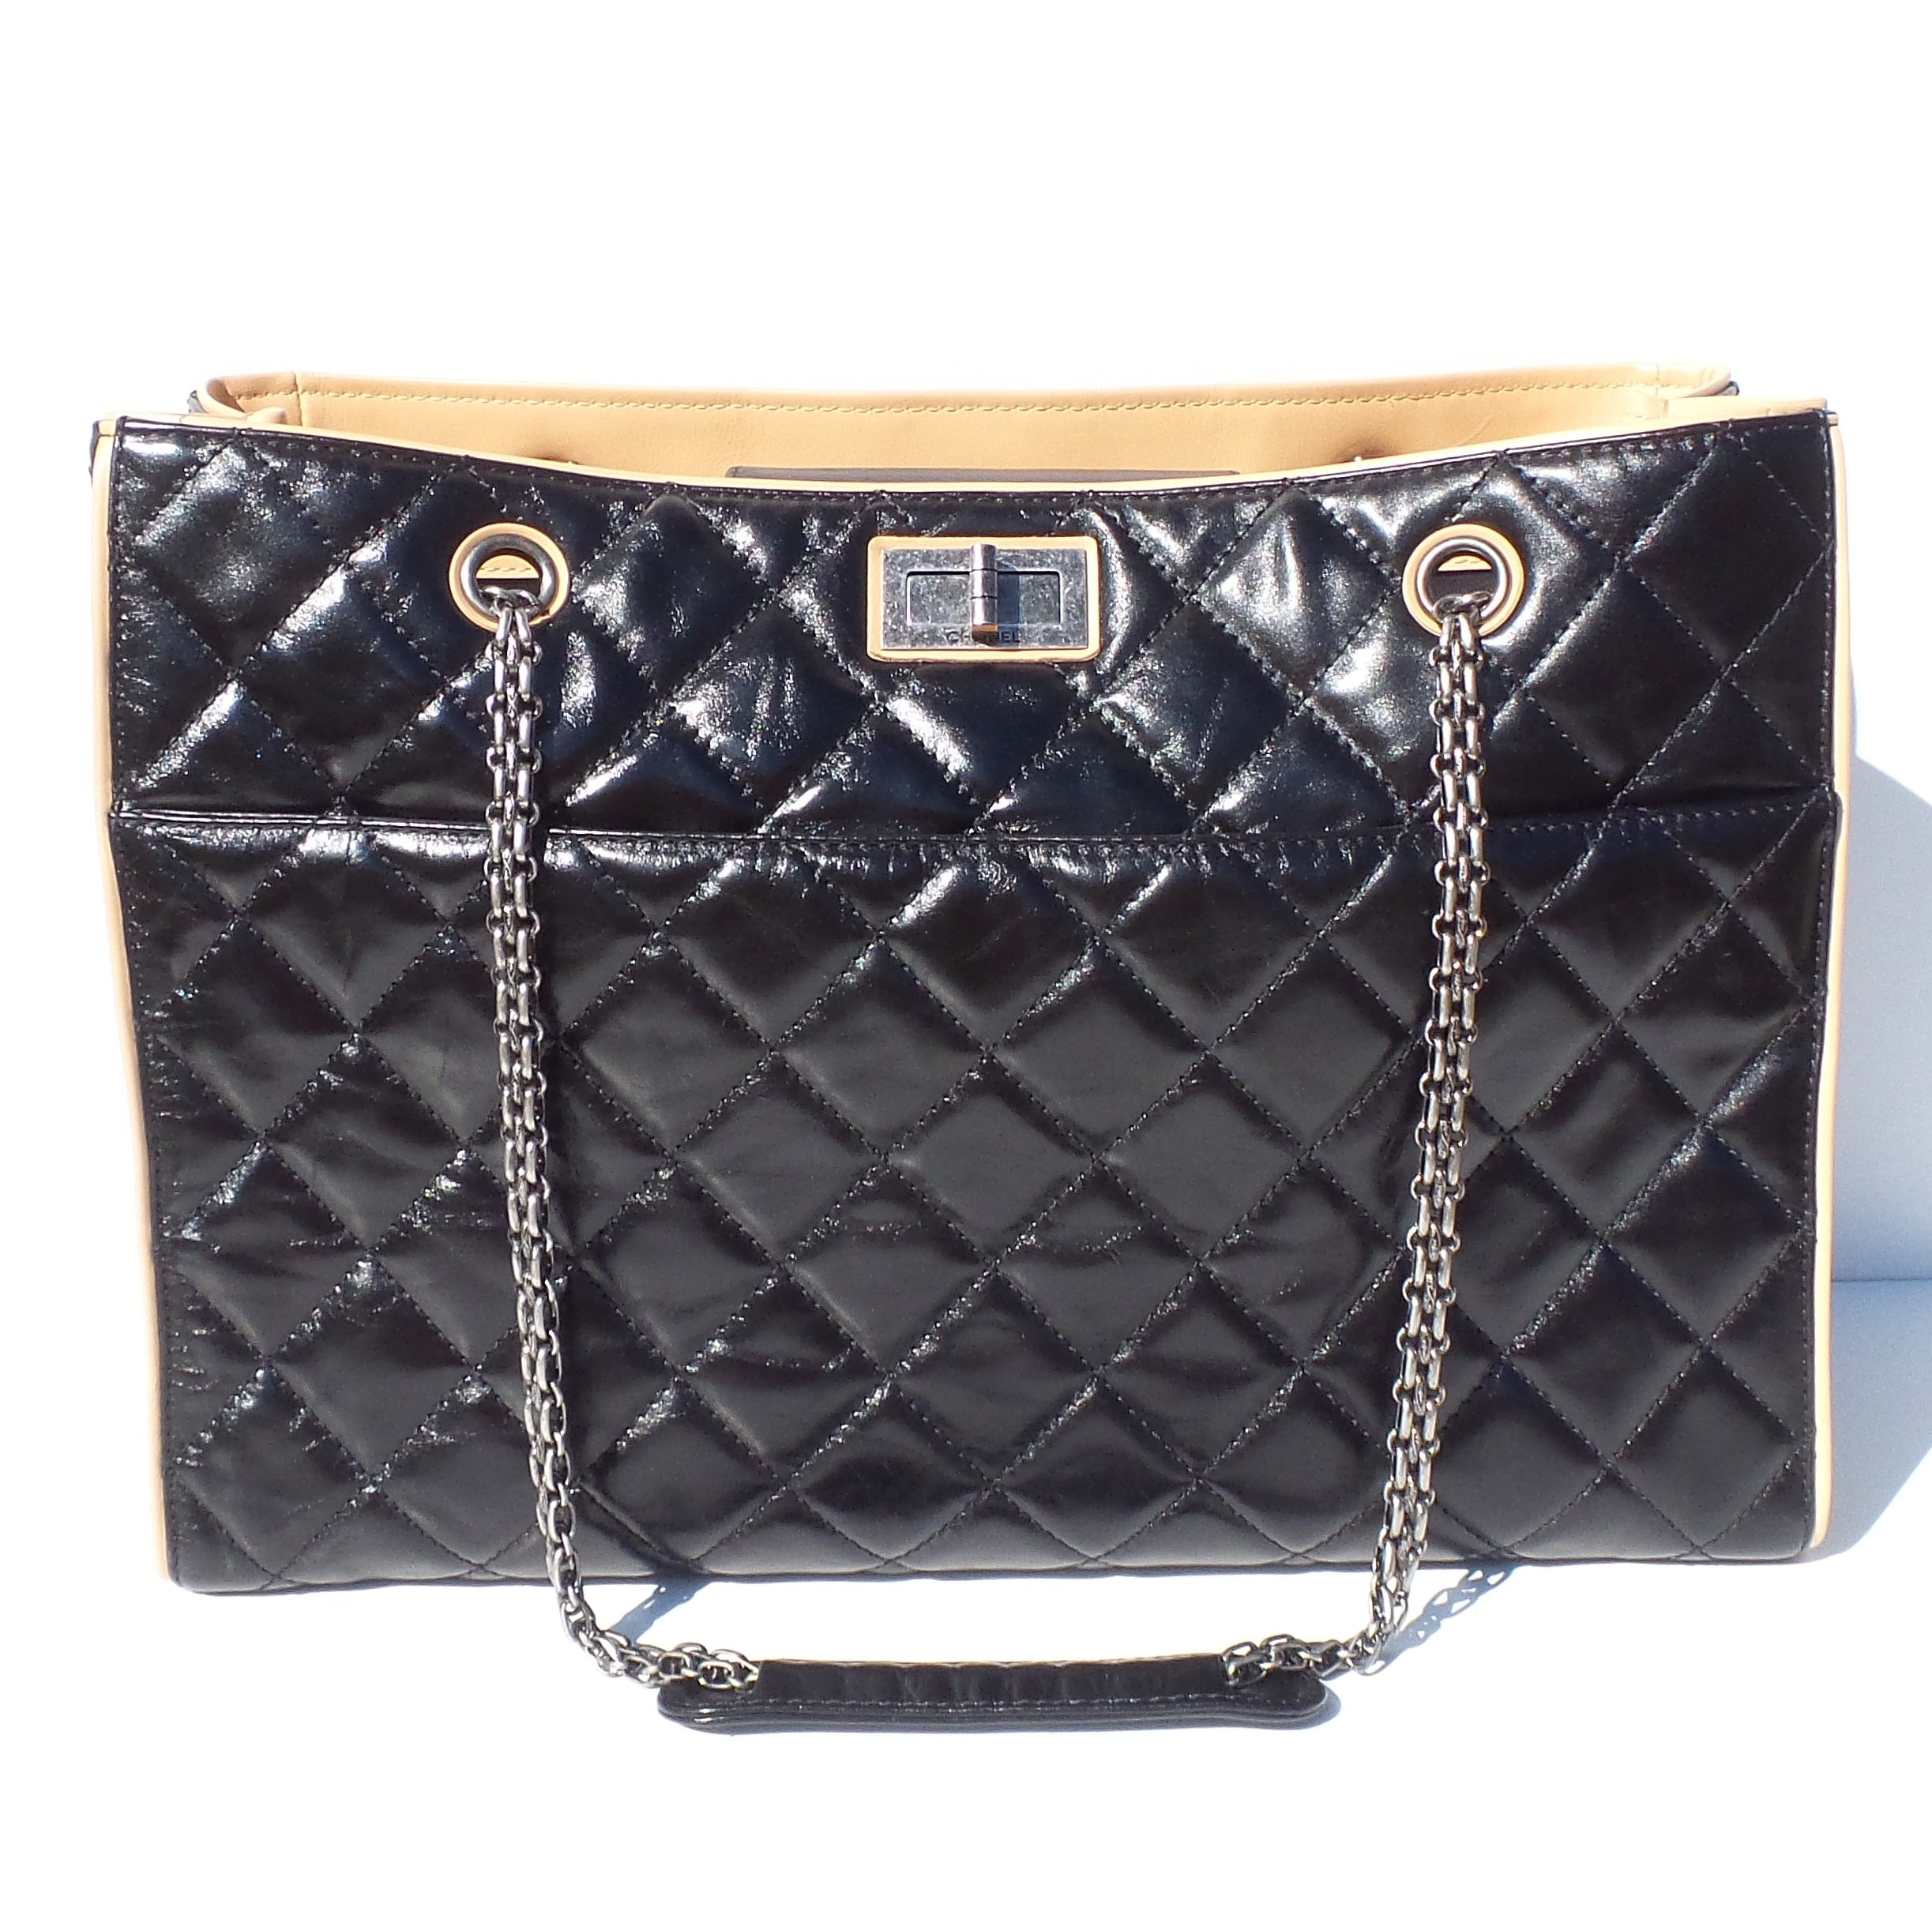 99219539ef5 CHANEL Black Glazed Quilted Leather Beige 2.55 Reissue Grand Shopping Tote  Bag